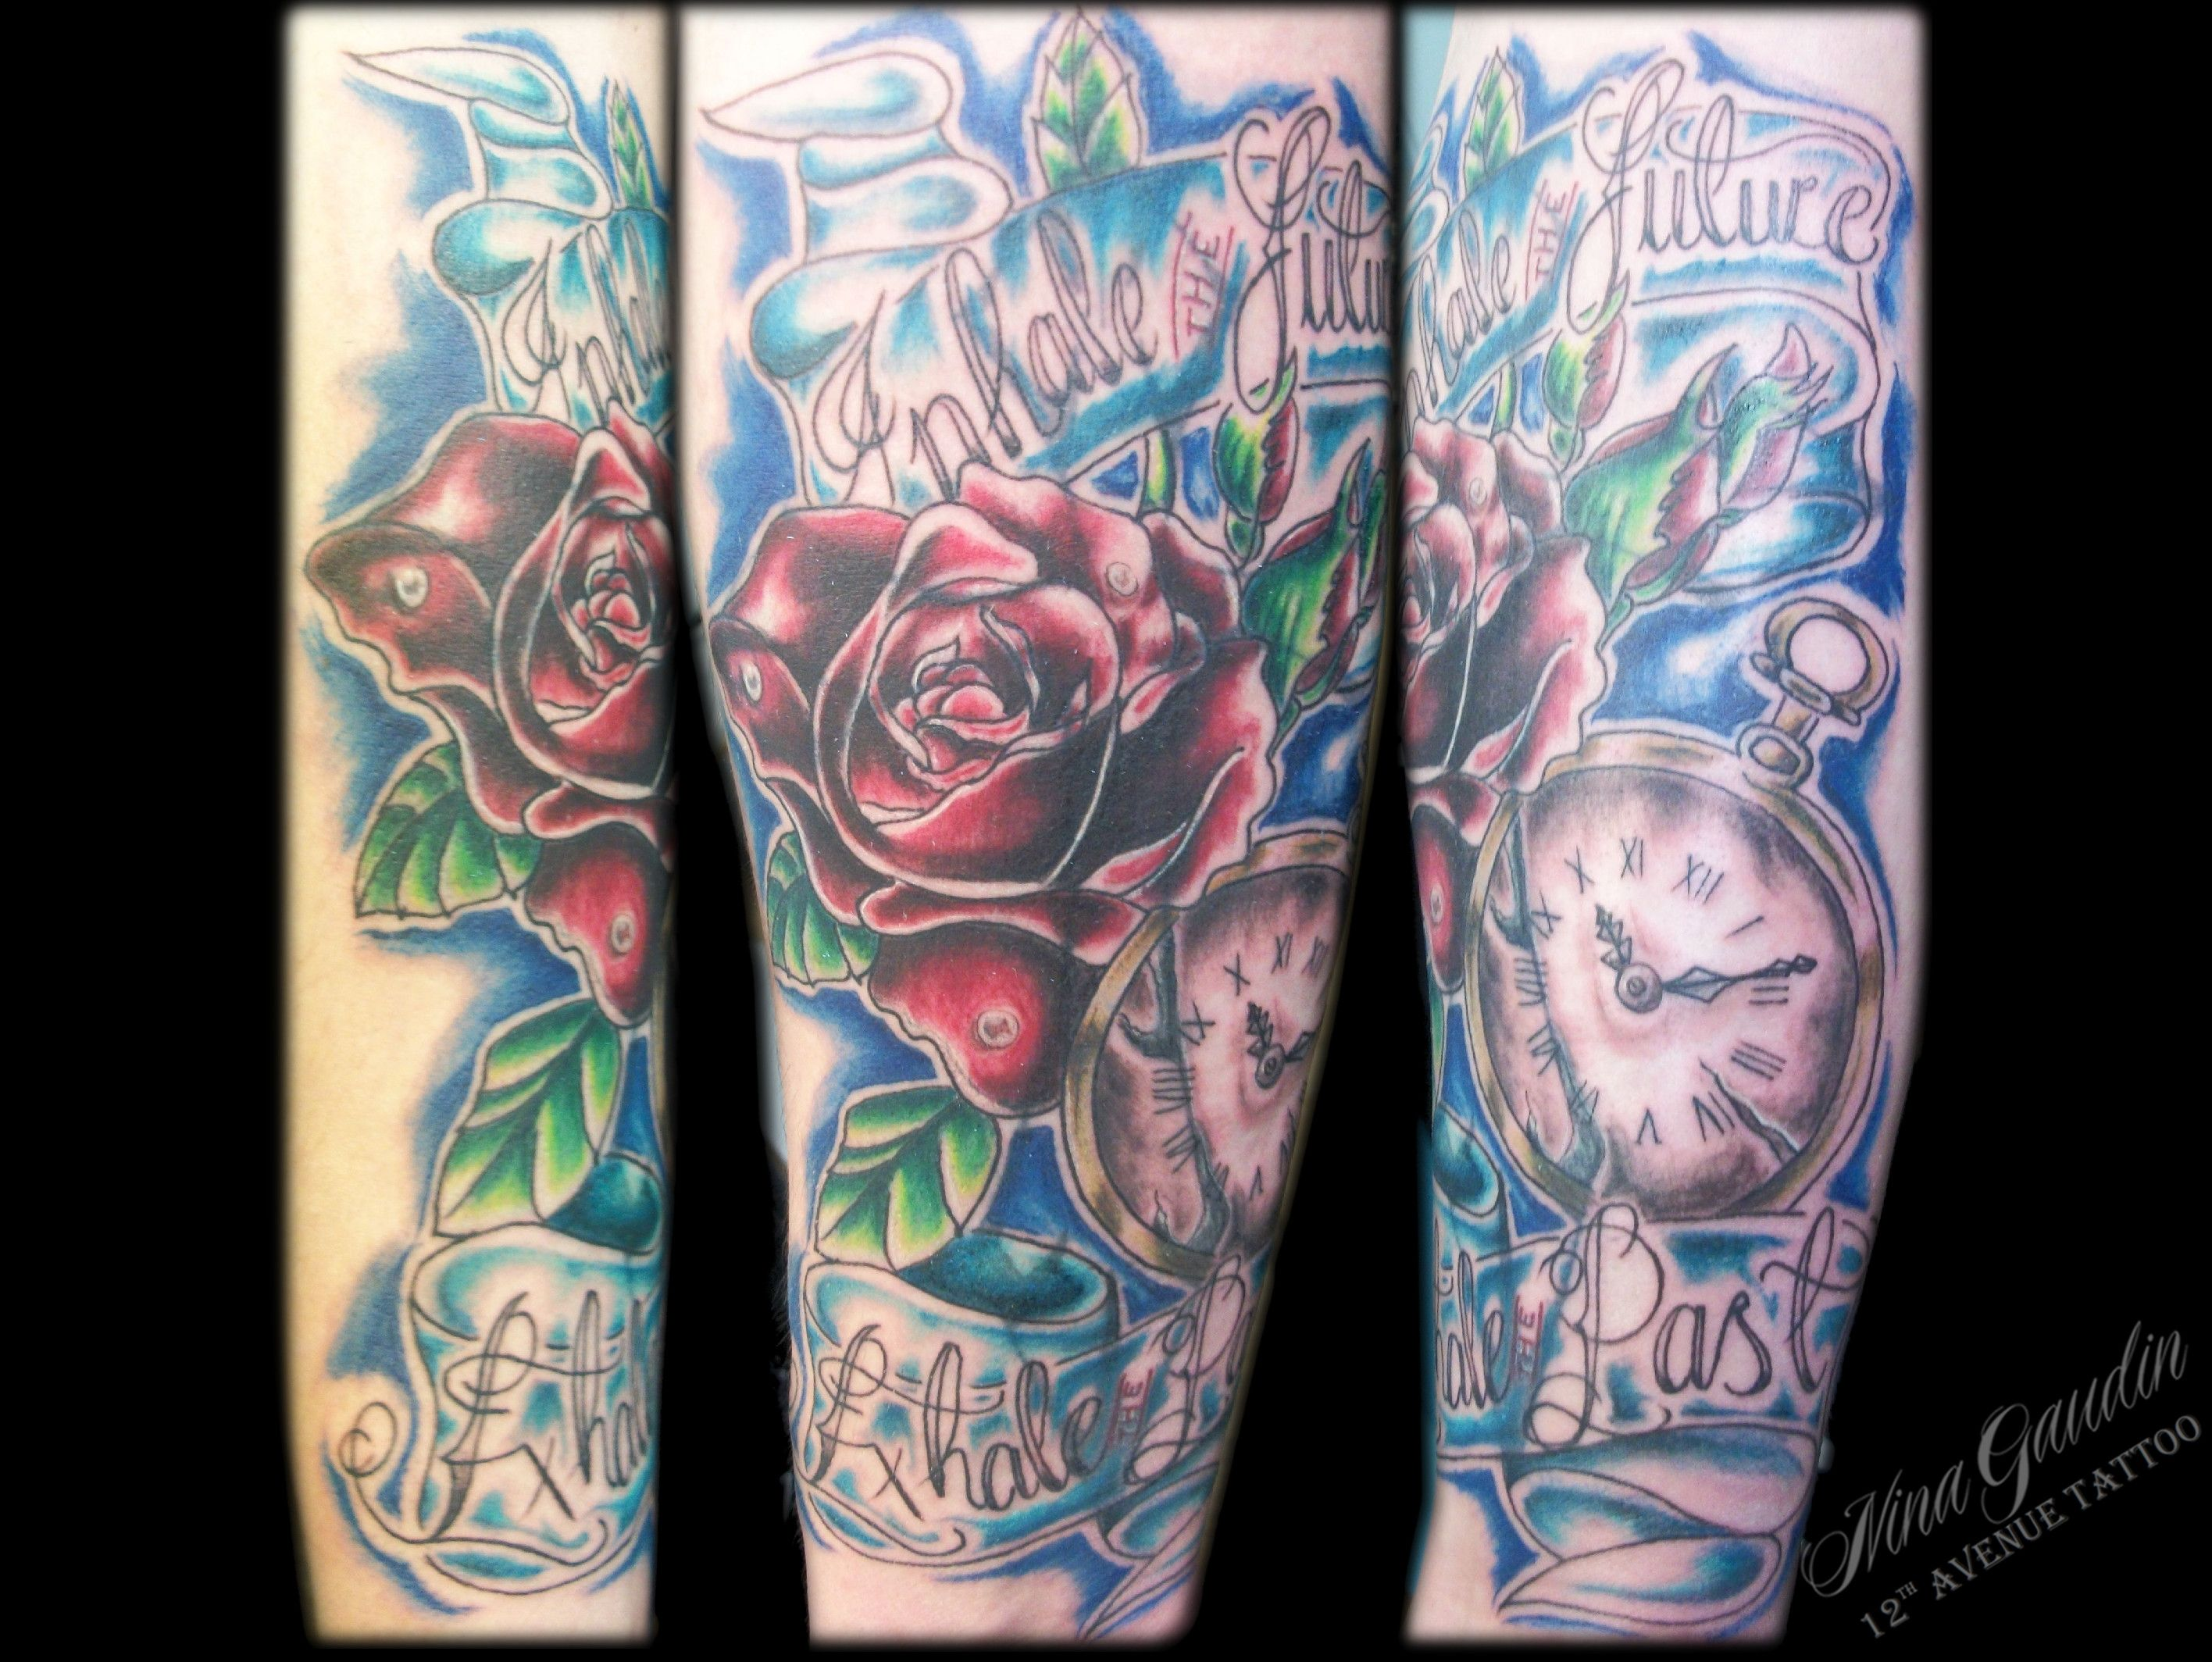 440546a8502de Inhale the past exhale the future rose and watch with banner color forearm cover  up - Tattoo by Nina Gaudin of 12th Avenue Tattoo in Nampa, ID